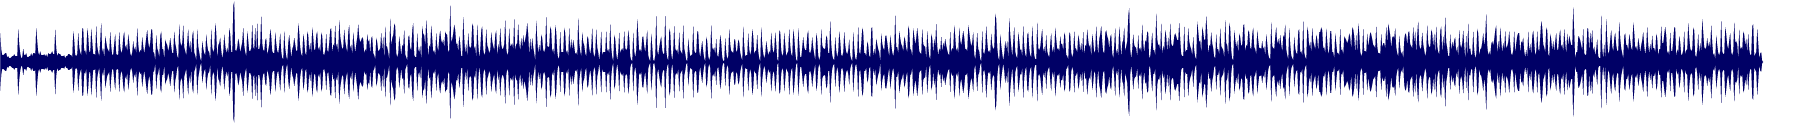 waveform of track #68274